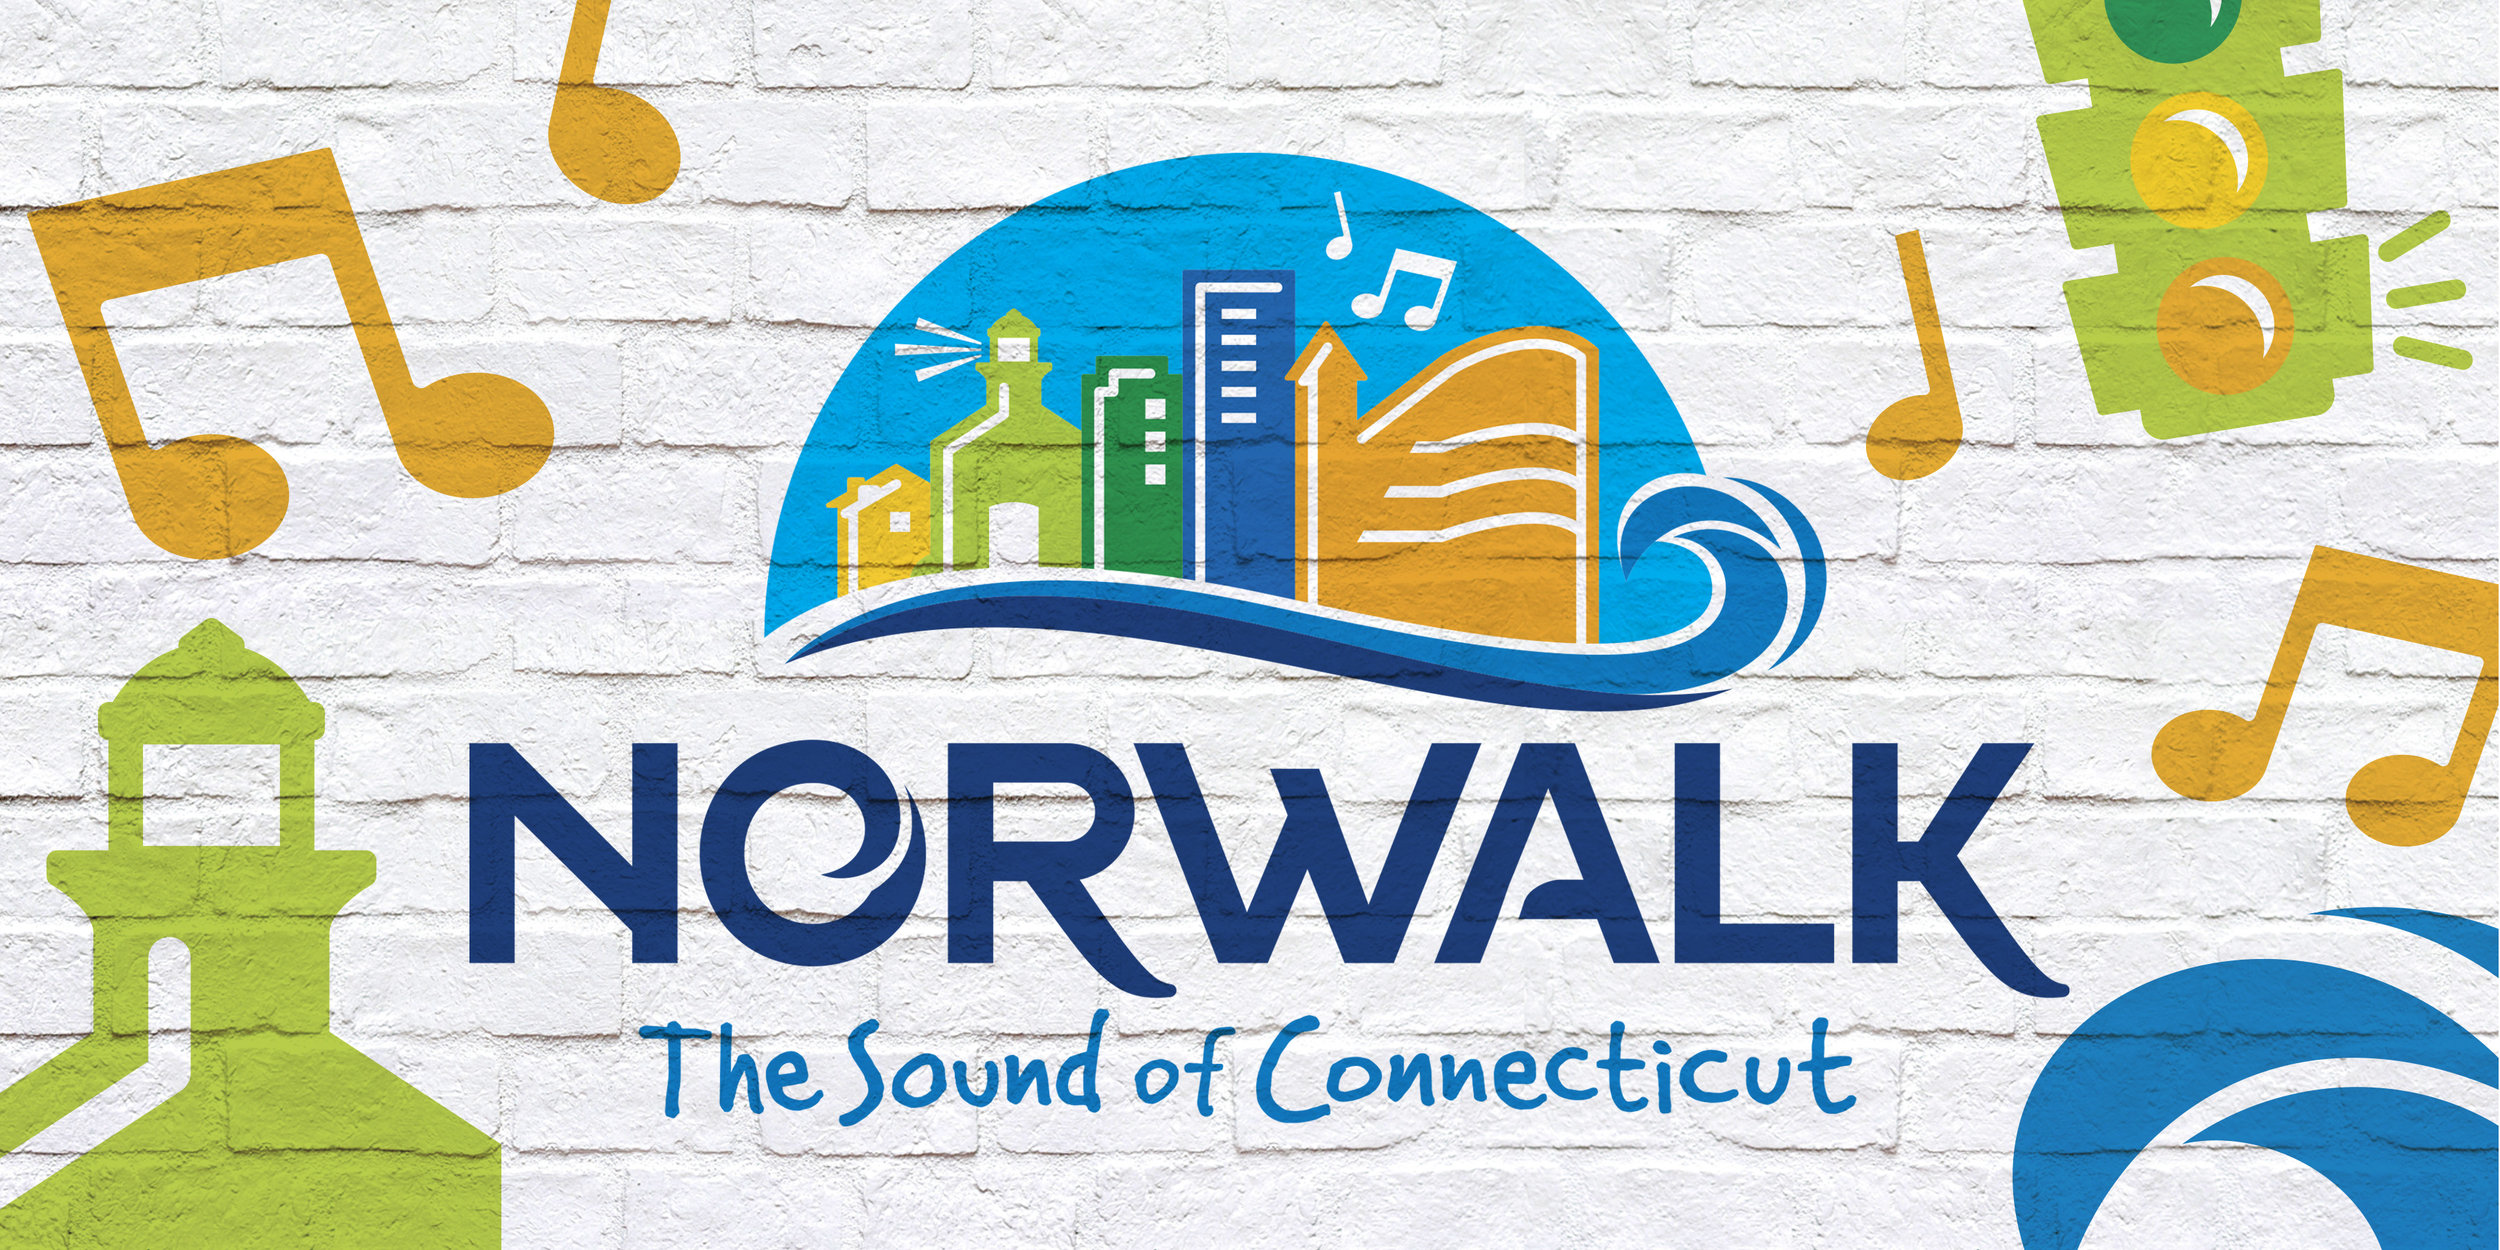 Norwalk_12x6_Wall.jpg